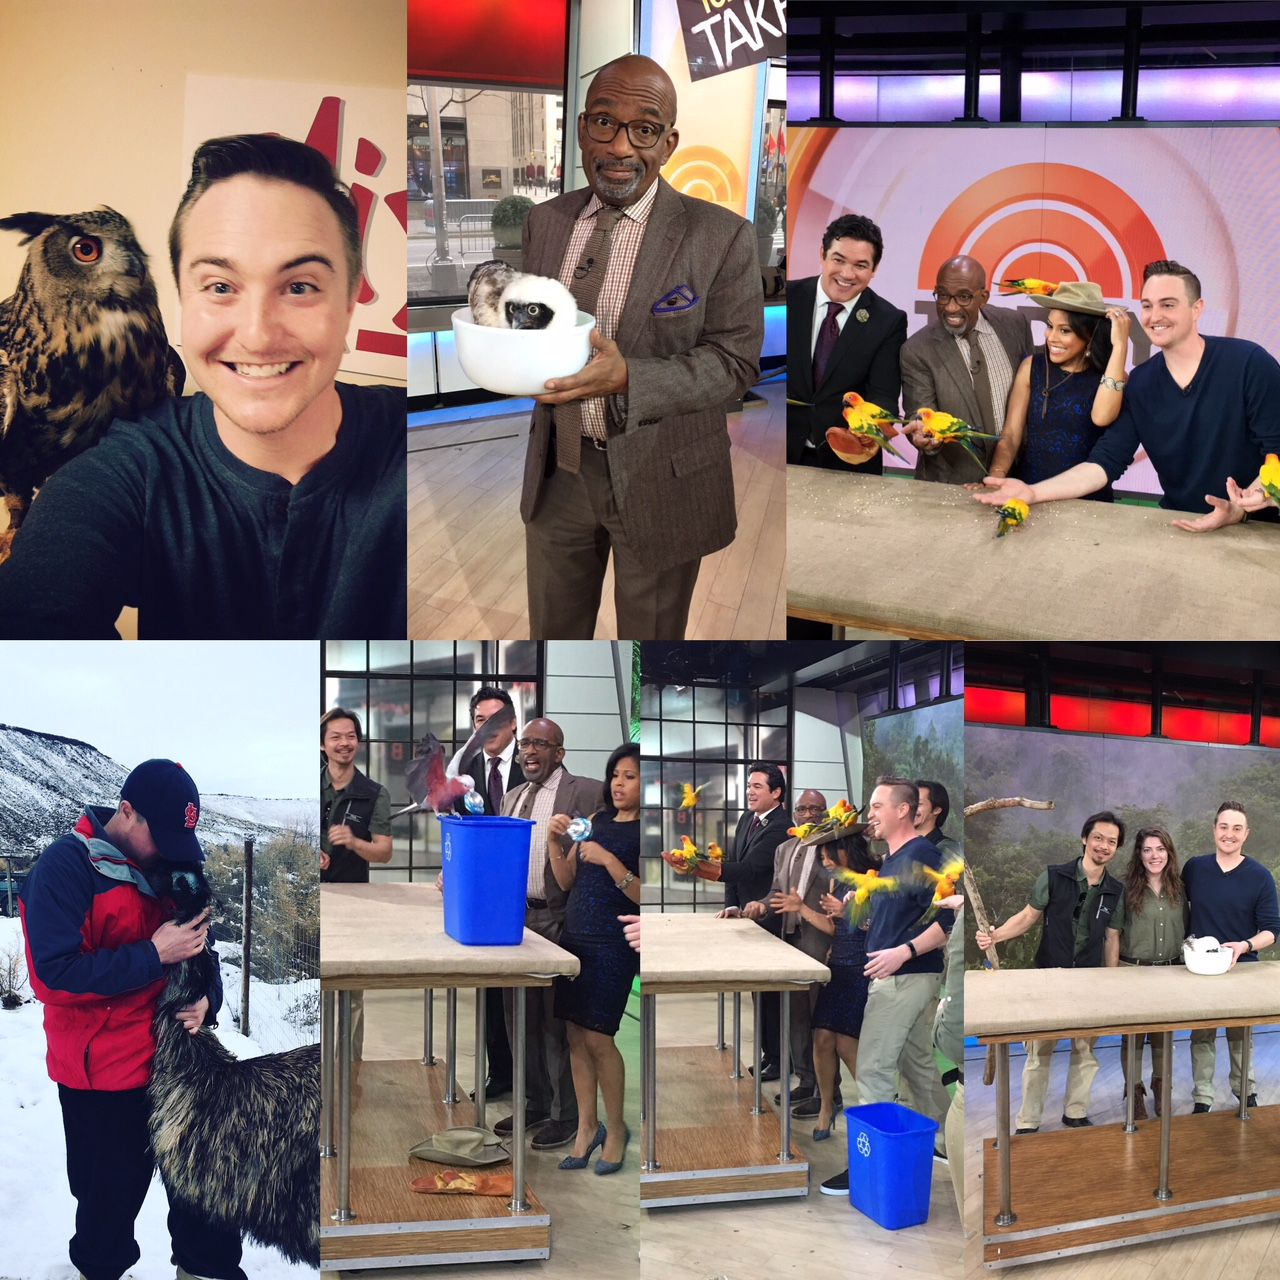 Top Left: Wally the Eurasian Eagle Owl from the World Center for Birds of Prey at Mix 106 Radio. Top Middle: Al Roker and owl chick. Top Right: On the set of The Today Show with Dean Cain, Al Roker, Sheinelle Jones, and a flock of Sun Conures. Bottom Left: Hugging Napoloen my pet emu. Bottom Middle: Birds taking over the set of The Today Show. Bottom Right: Pictured with Phung and Cora.